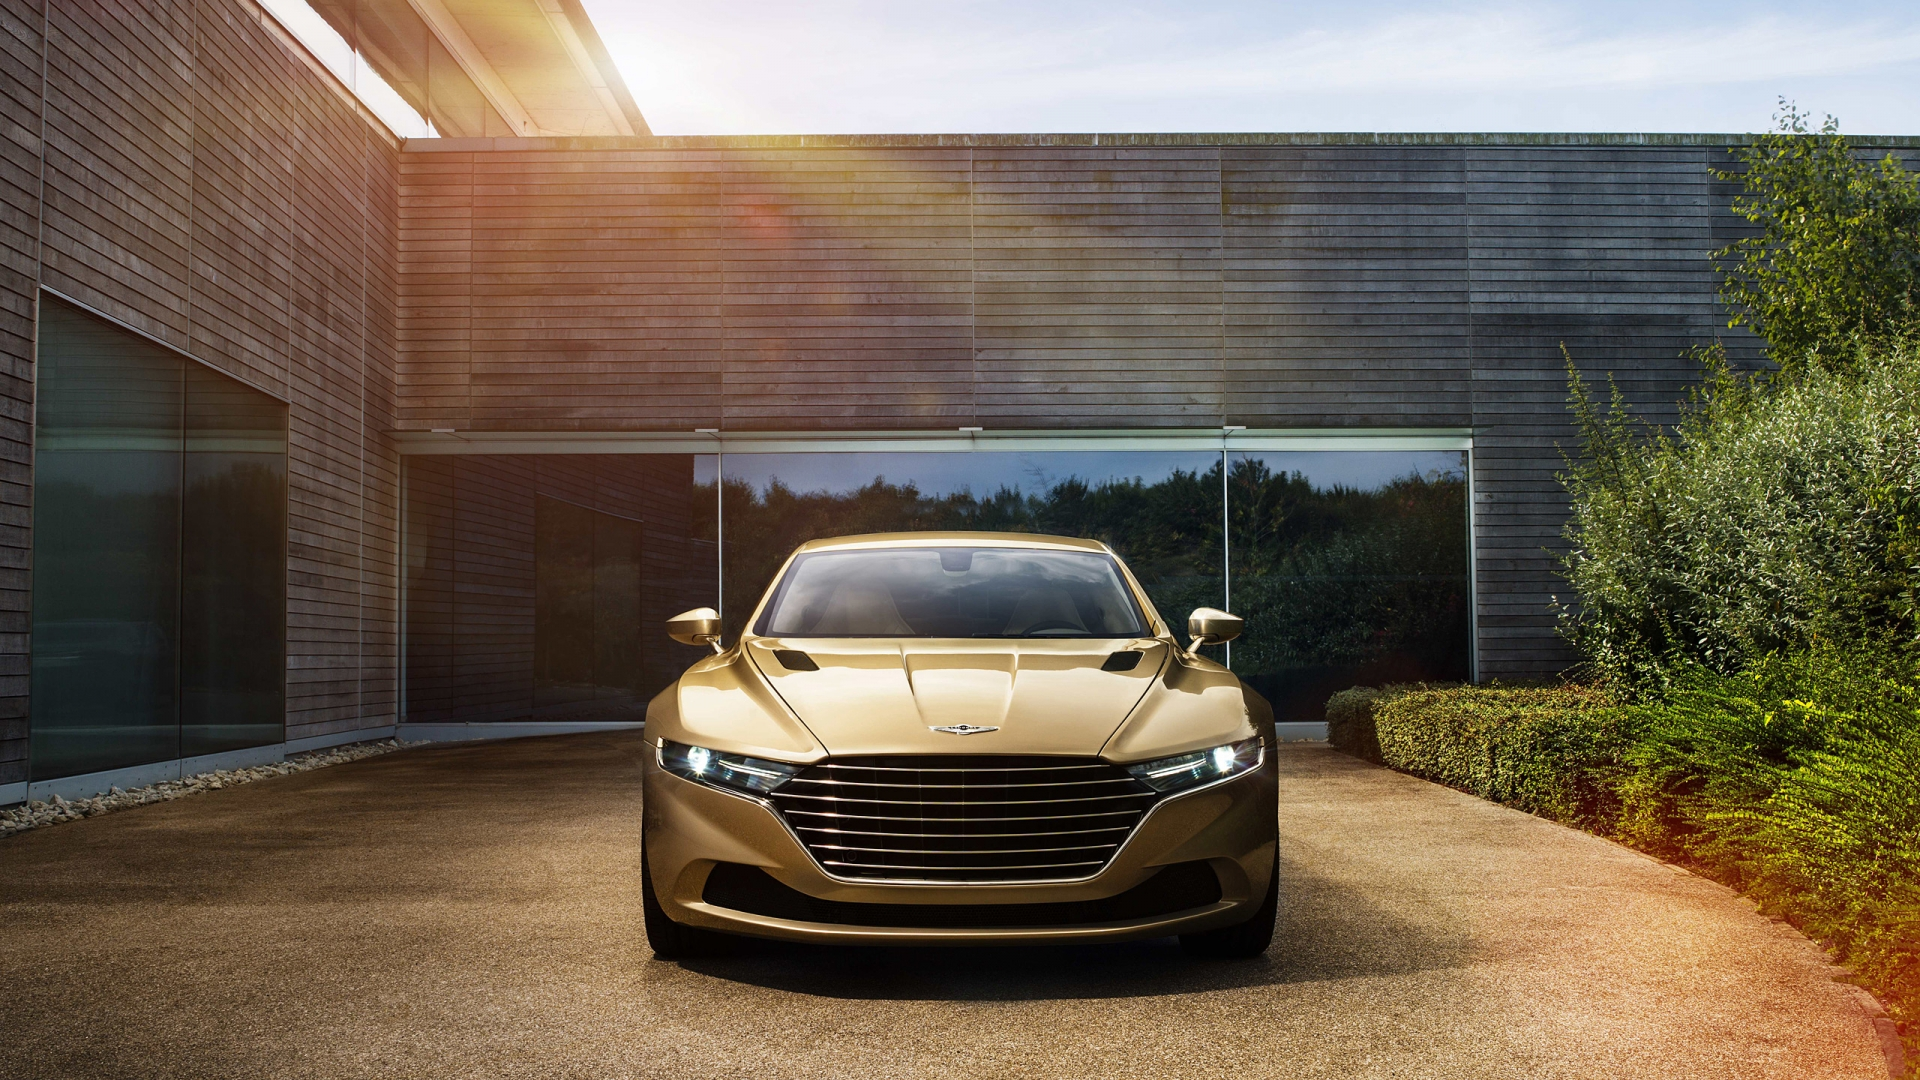 Aston Martin Lagonda 2017 HD Wallpapers 1920x1080